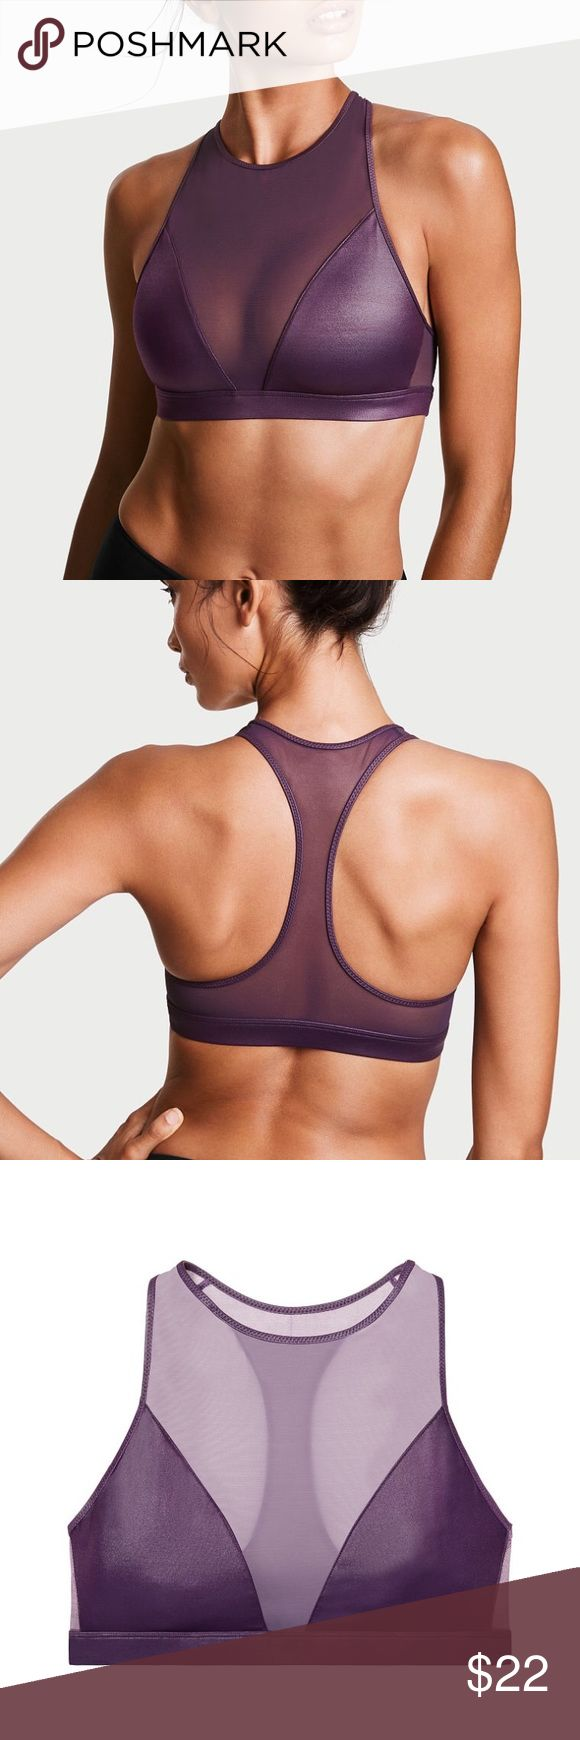 NWT Victoria's Secret Shine High Neck Sports Bra Perfect form: a mesh high neck contours curves in this minimum-support sport bra featuring high-shine fabric.  Details  Minimum support  Pullover style  Performance & Fabric  Perfect for yoga, Pilates and weight training  Mesh high neck and racerback  Hand wash  Imported nylon/spandex  * All items are brand new with tags/and or brand new in the bag, depending on if the item was purchased in-store or online. Victoria's Secret Intimates…